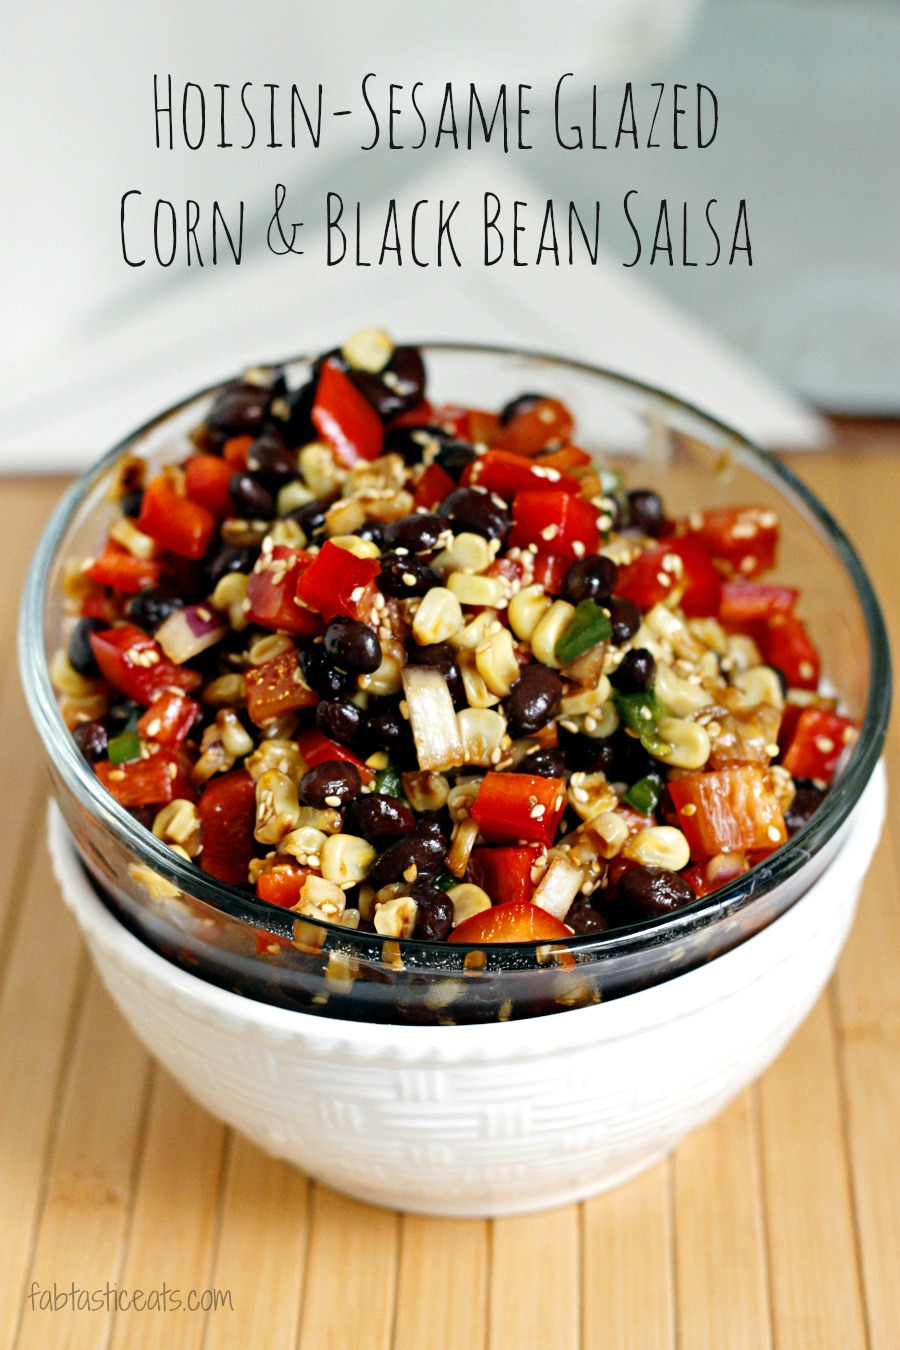 Hoisin-Sesame Glazed Roasted Corn and Black Bean Salsa